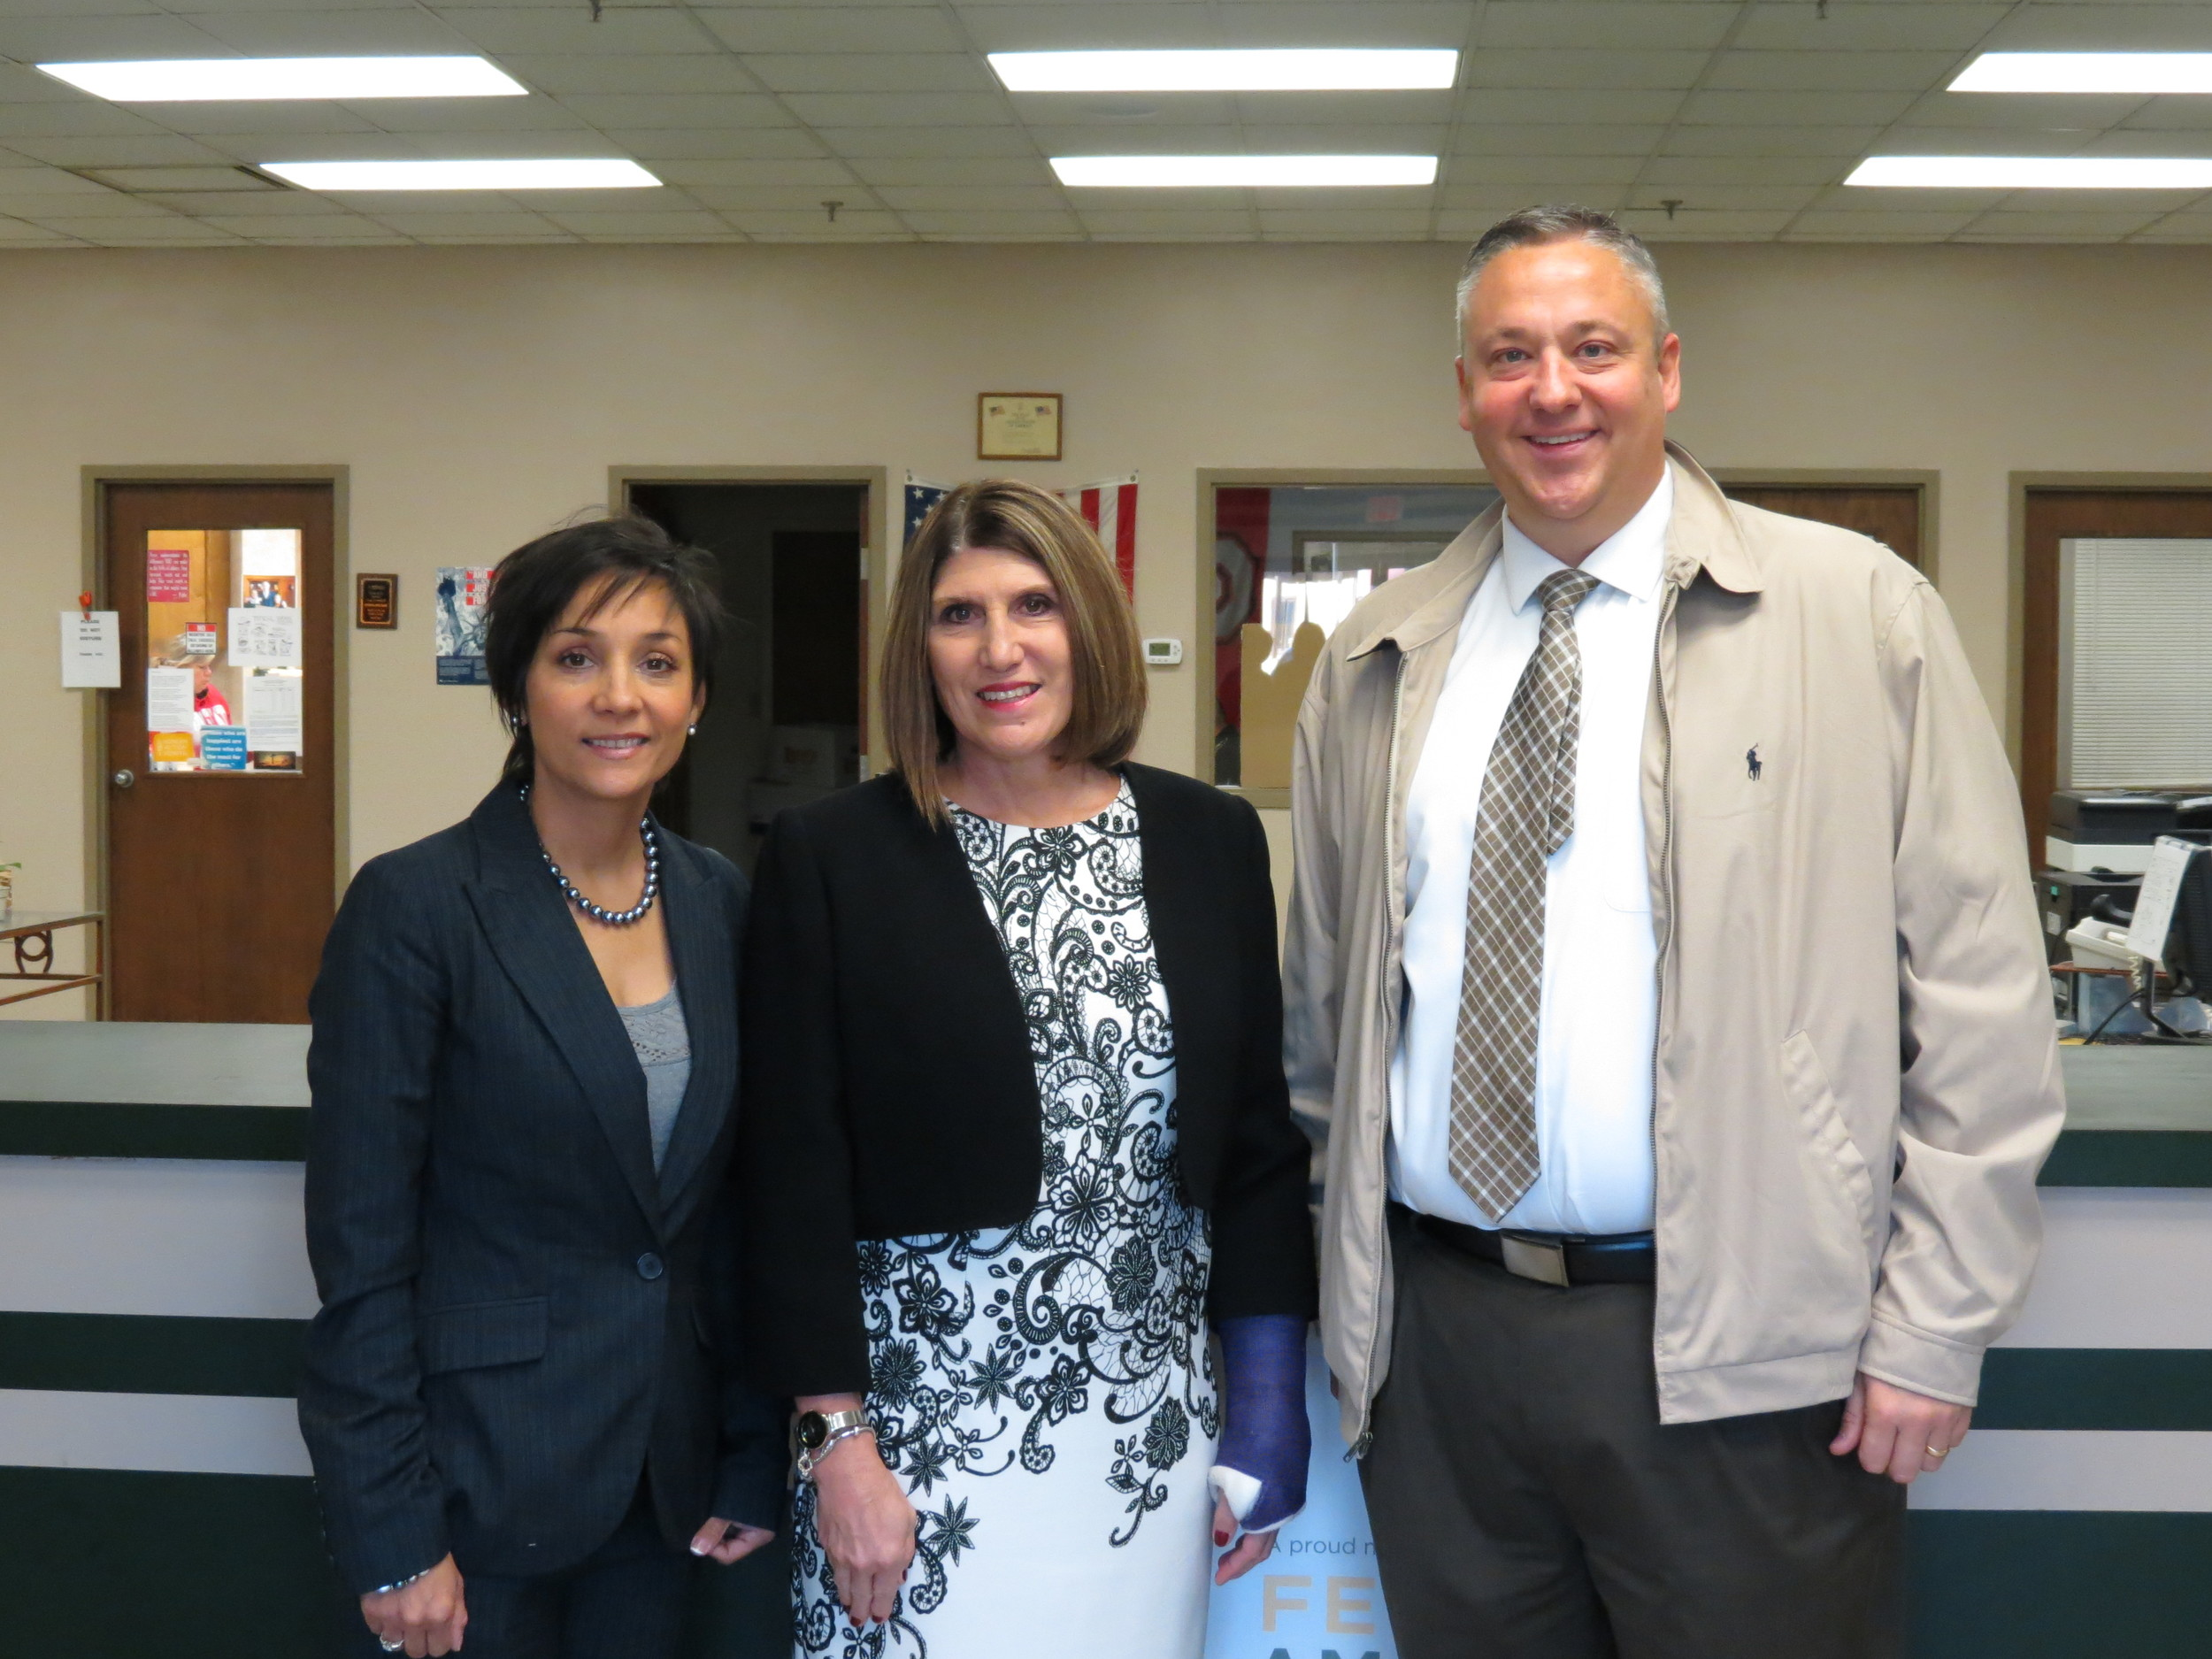 Rodney Coffey, AVP of the NW Ohio-Indianapolis Region, Linda Hamilton, CEO of the West Ohio Food Bank, and Regina Borja-Floyd, Lima, OH's Branch Manager